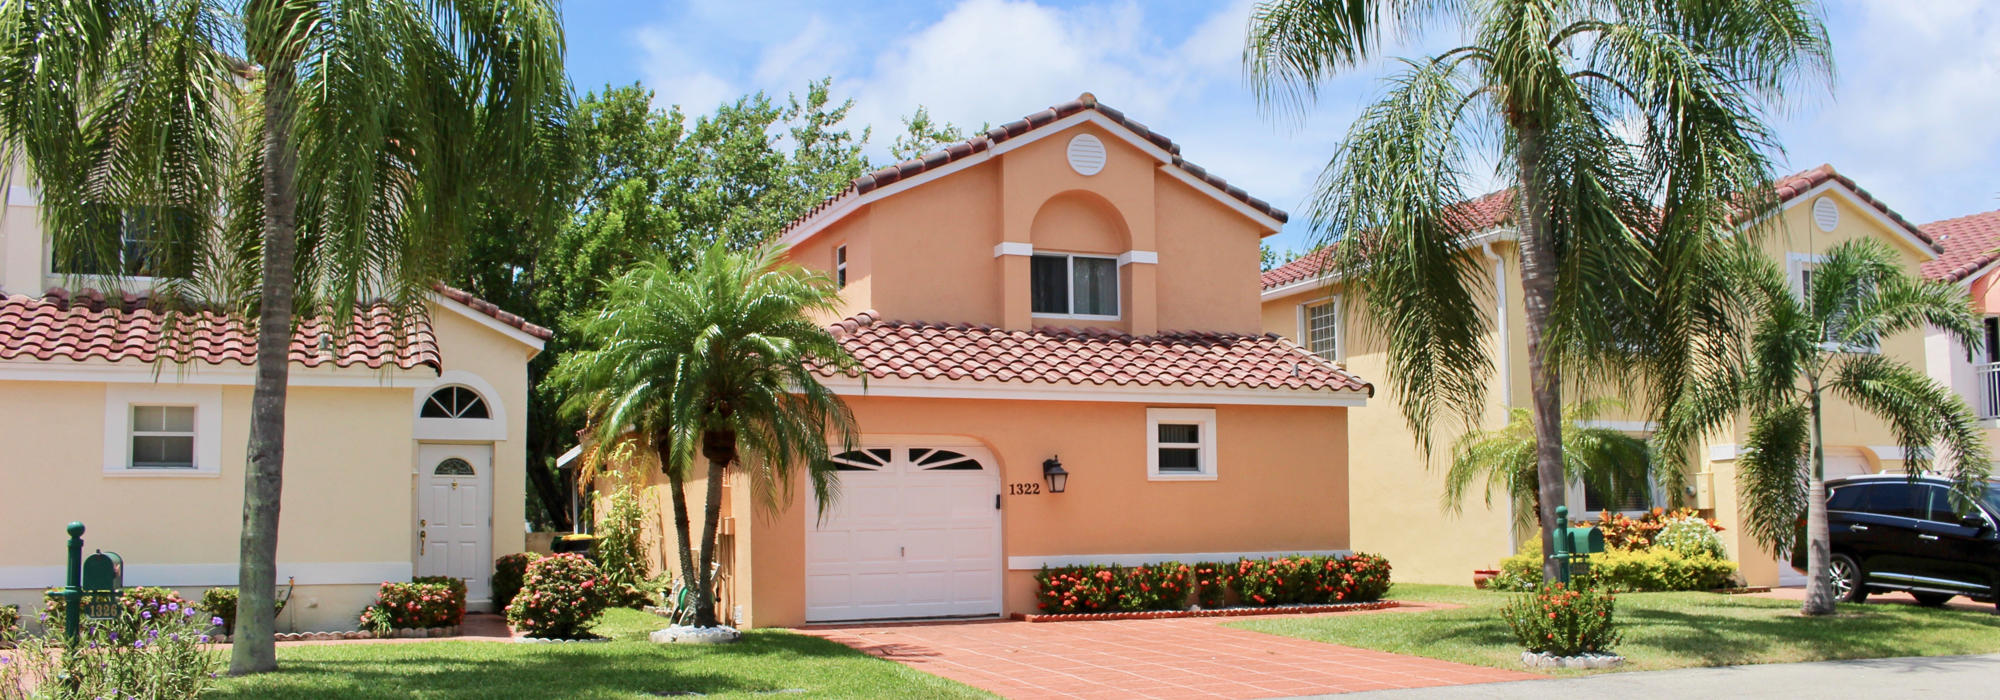 1322 SE 5th Ct, Dania Beach (Sheridan Ocean Club)